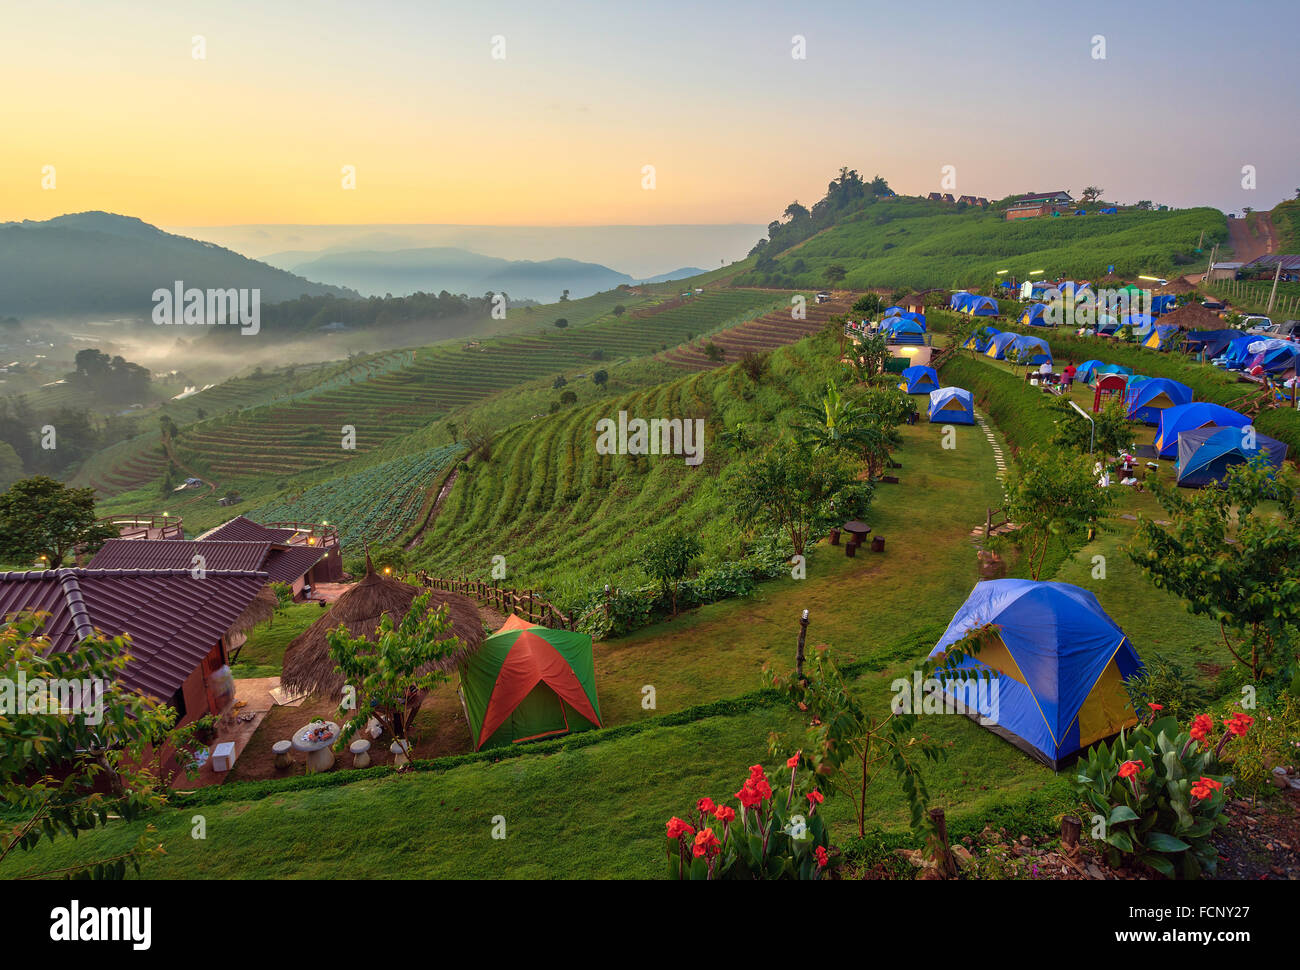 camping and sunrise on the mountain, Chiang Mai Thailand - Stock Image